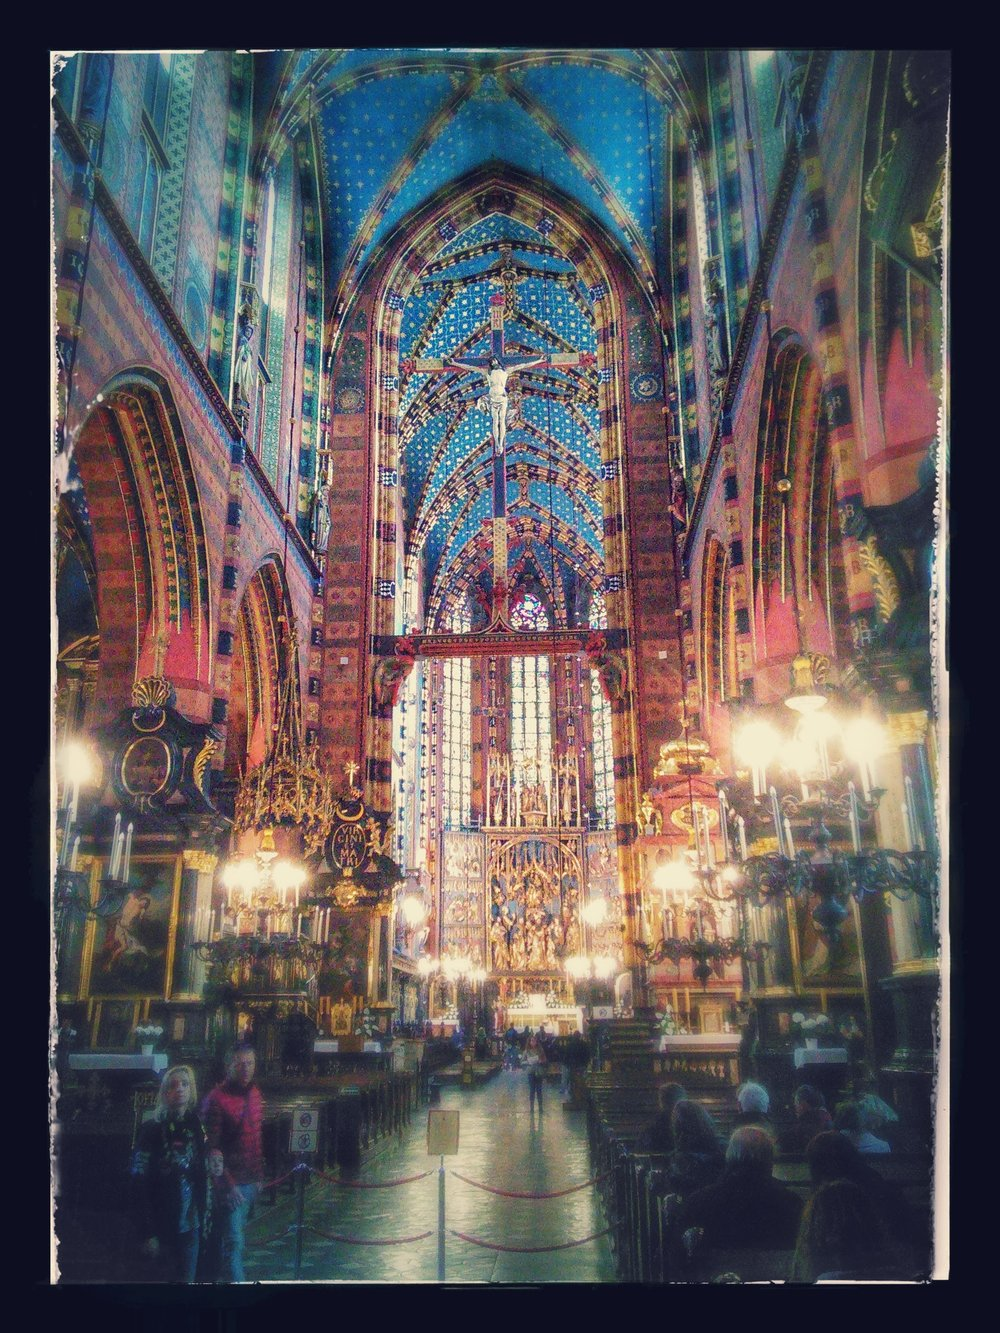 The inside of St Mary's Basilica in Krakow